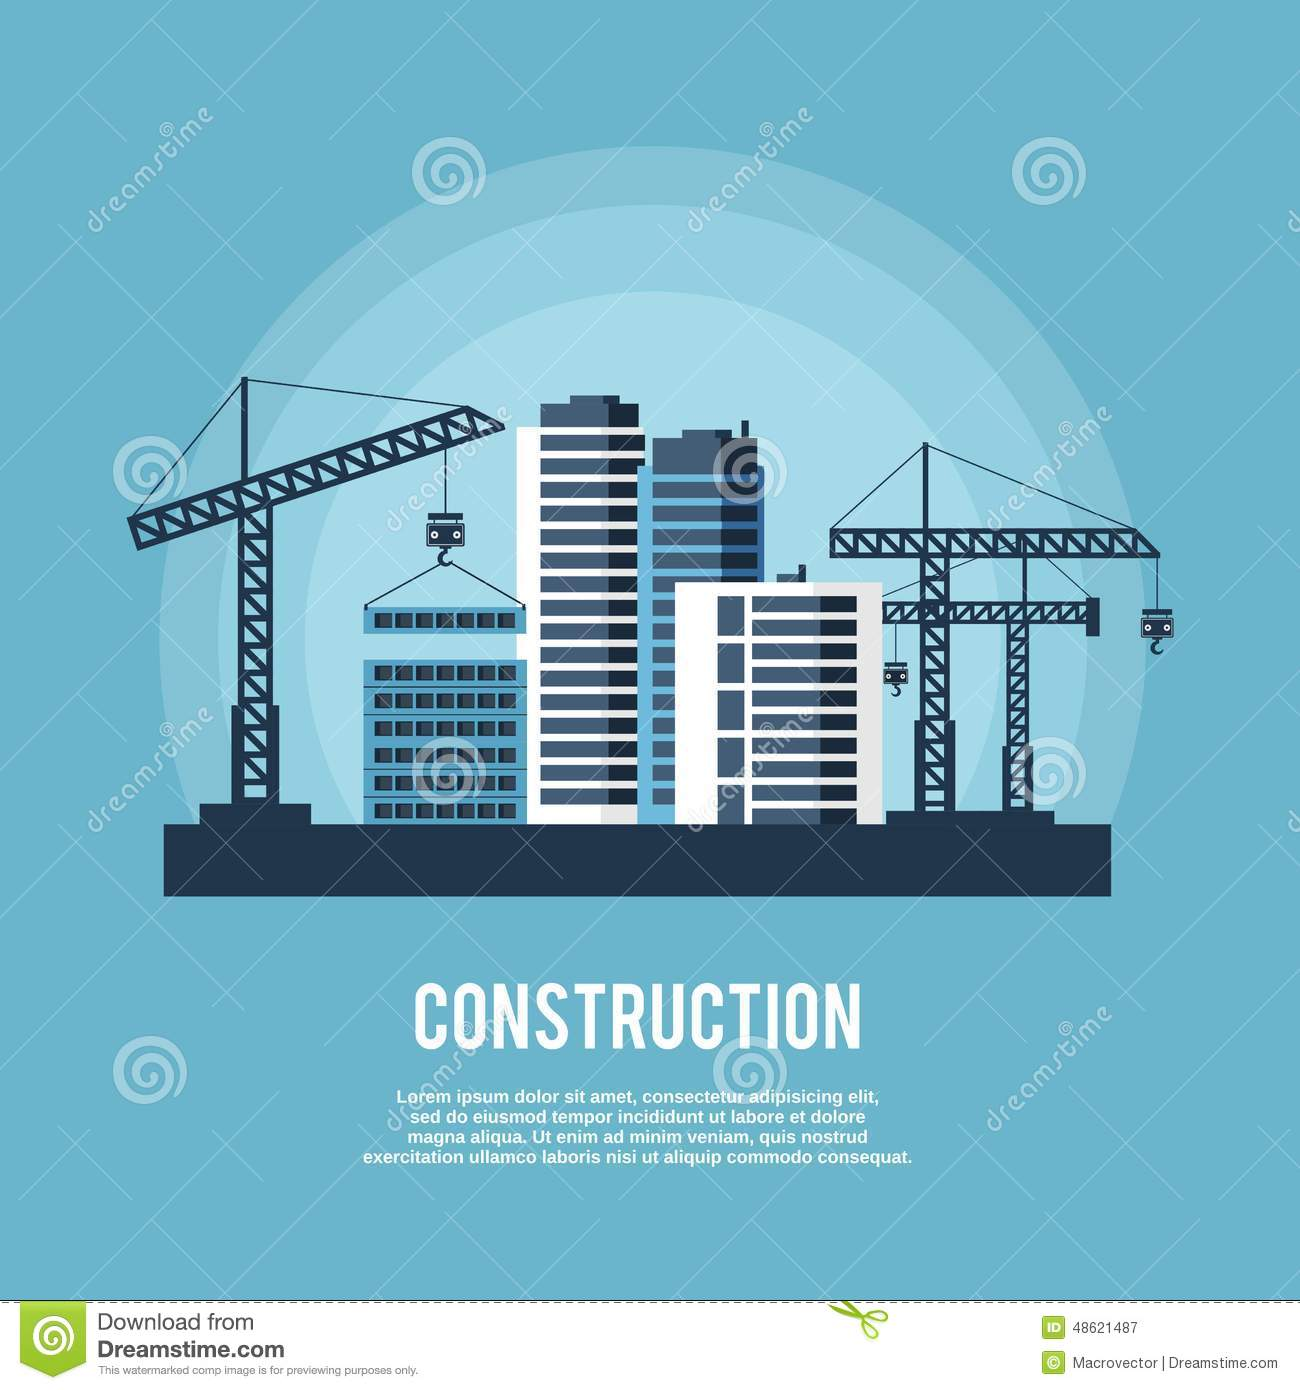 Construction Industry Poster Stock Vector - Image: 48621487